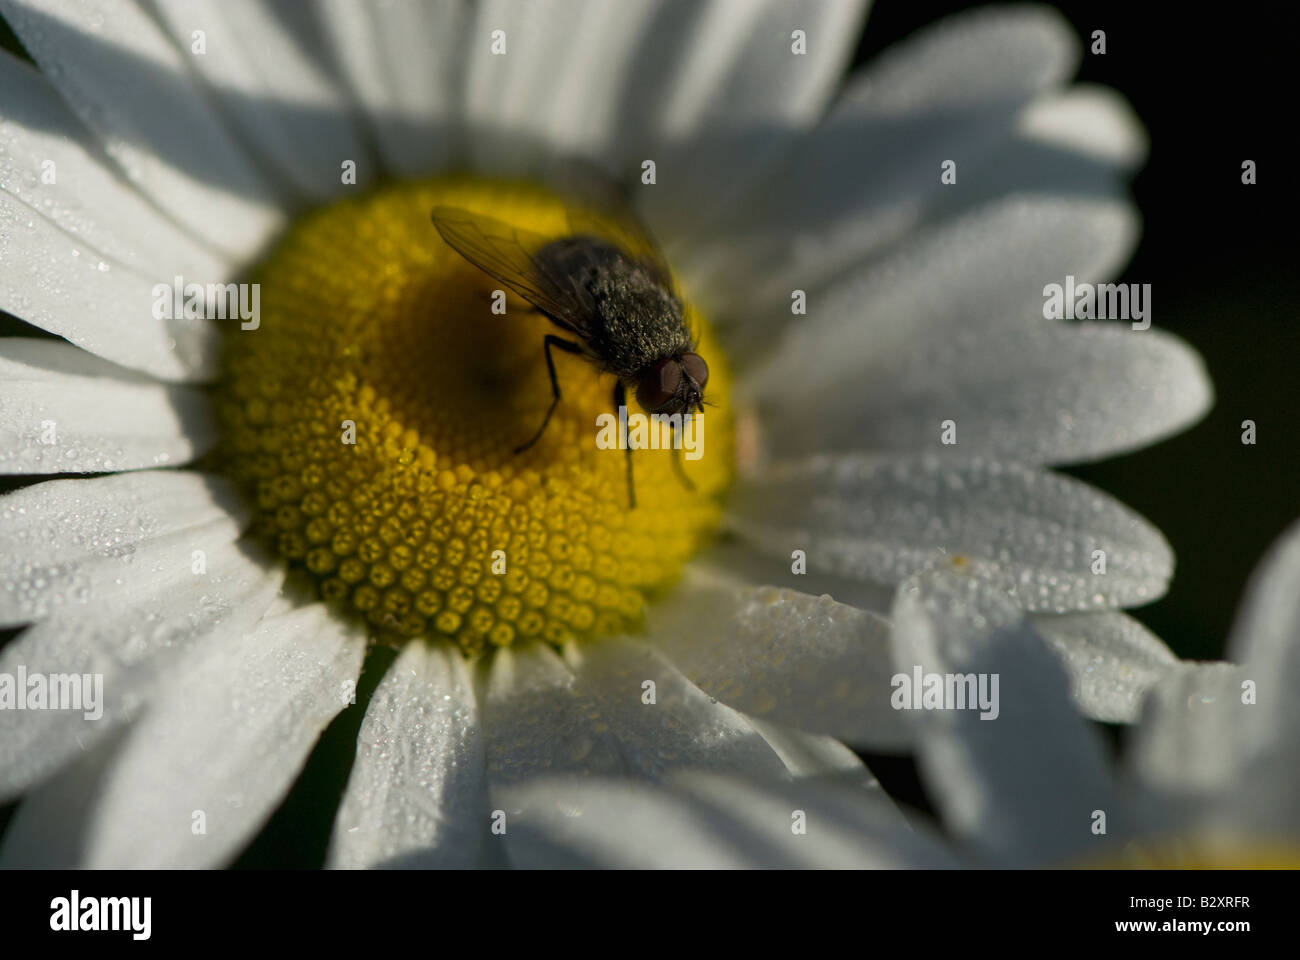 Common Fly resting on wild daisies with morning dewdrops on petals in morning sunlight. - Stock Image